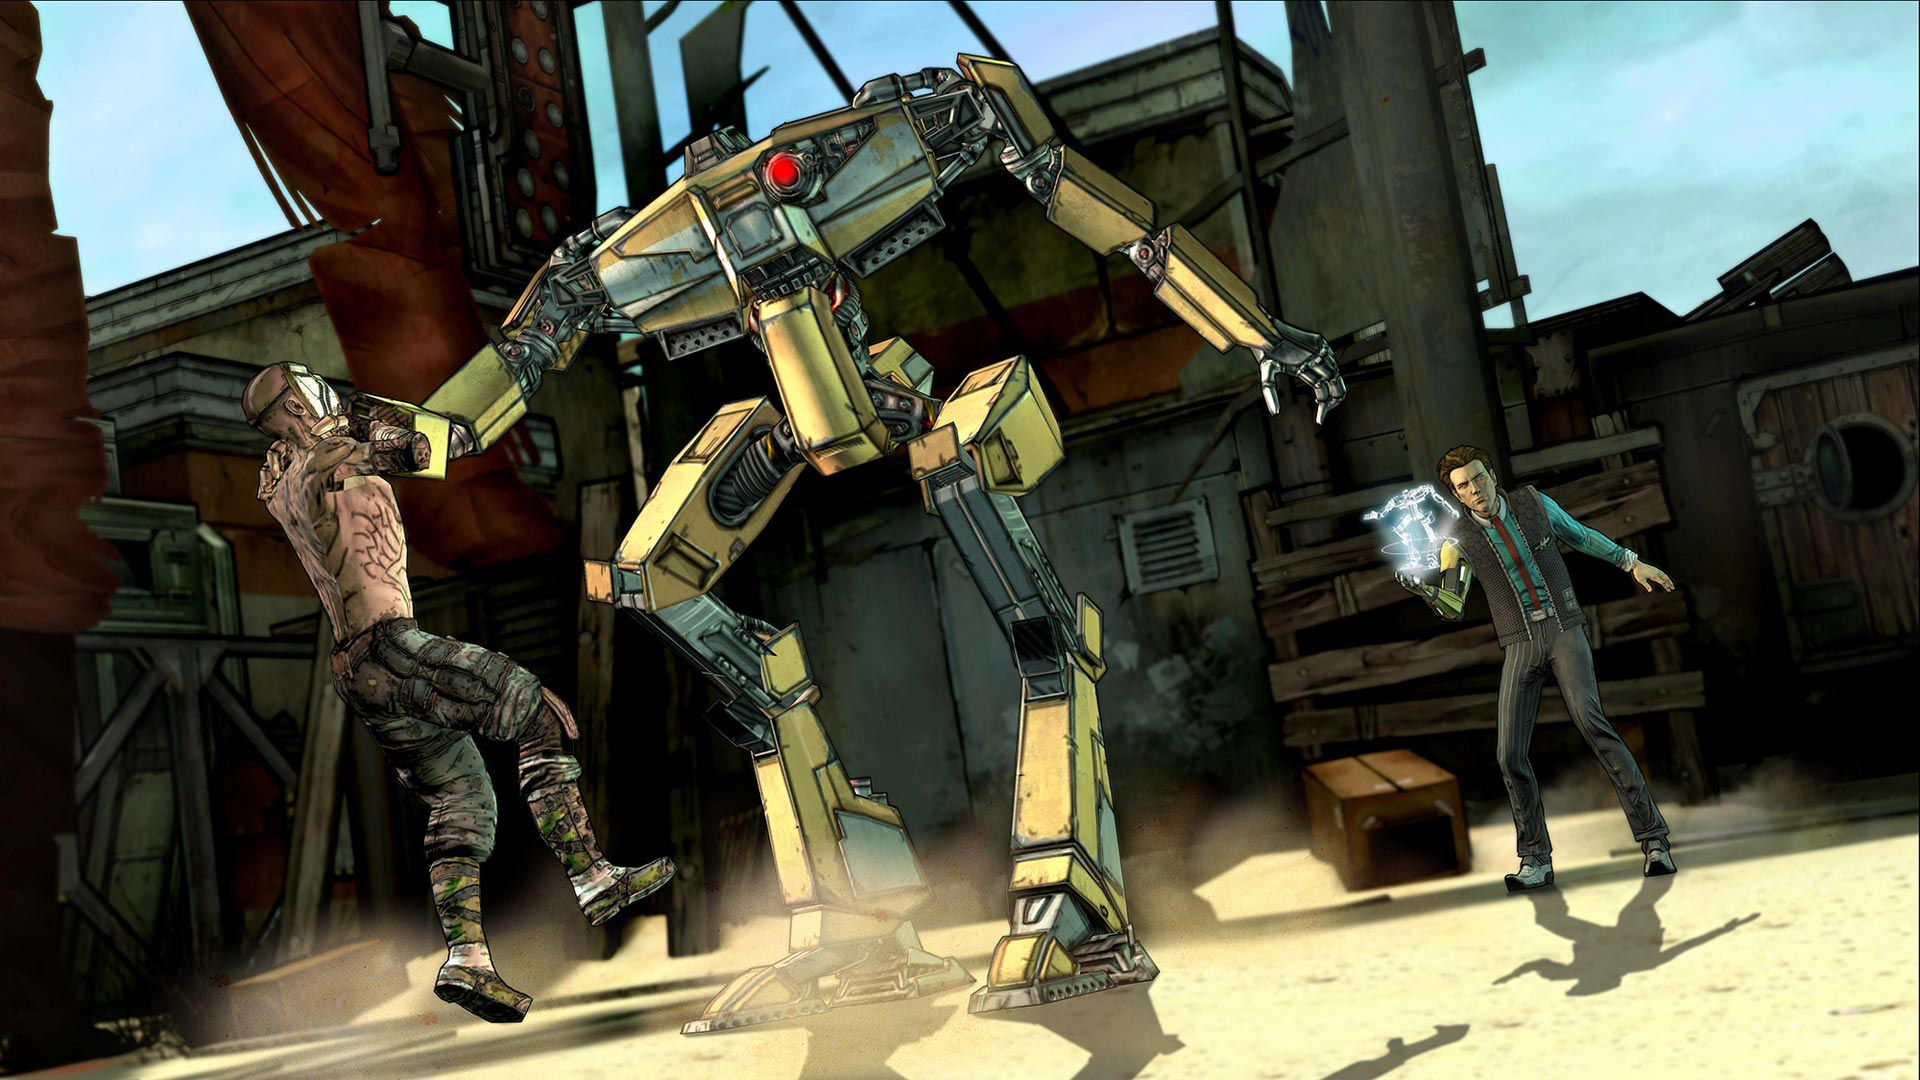 Tales from the Borderlands screenshot #12